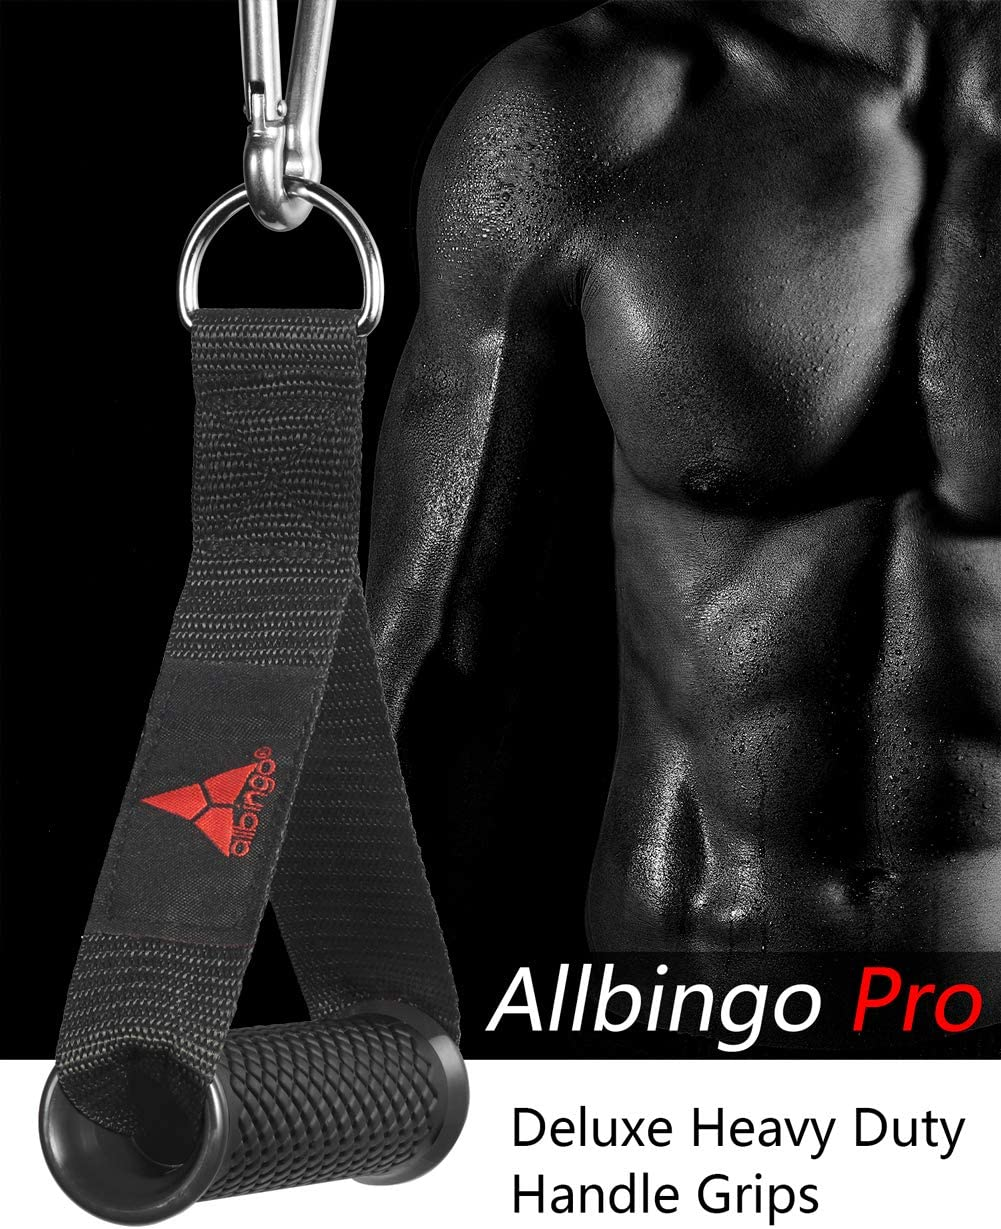 Allbingo Pro Cable Handles Compatible with Cable Machines and Bowflex Heavy Duty Exercise Hand Grips Attachment with 2 Carabiners for Resistance Bands Total Home Gym